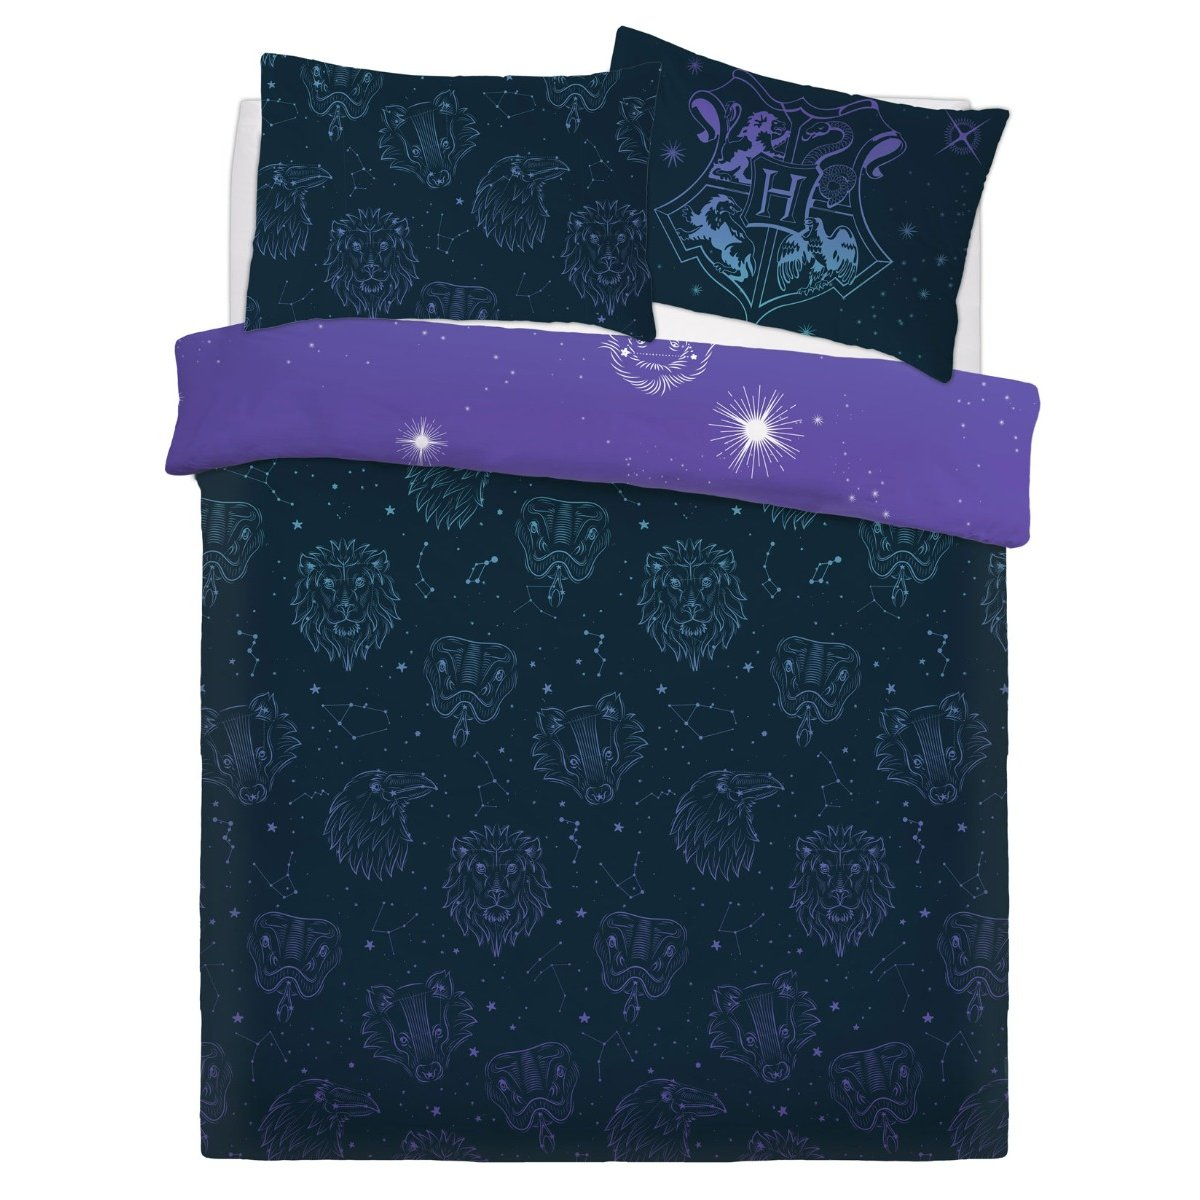 Harry Potter Celestial Magic Bedding - Reversible Duvet Cover and Pillowcase Set